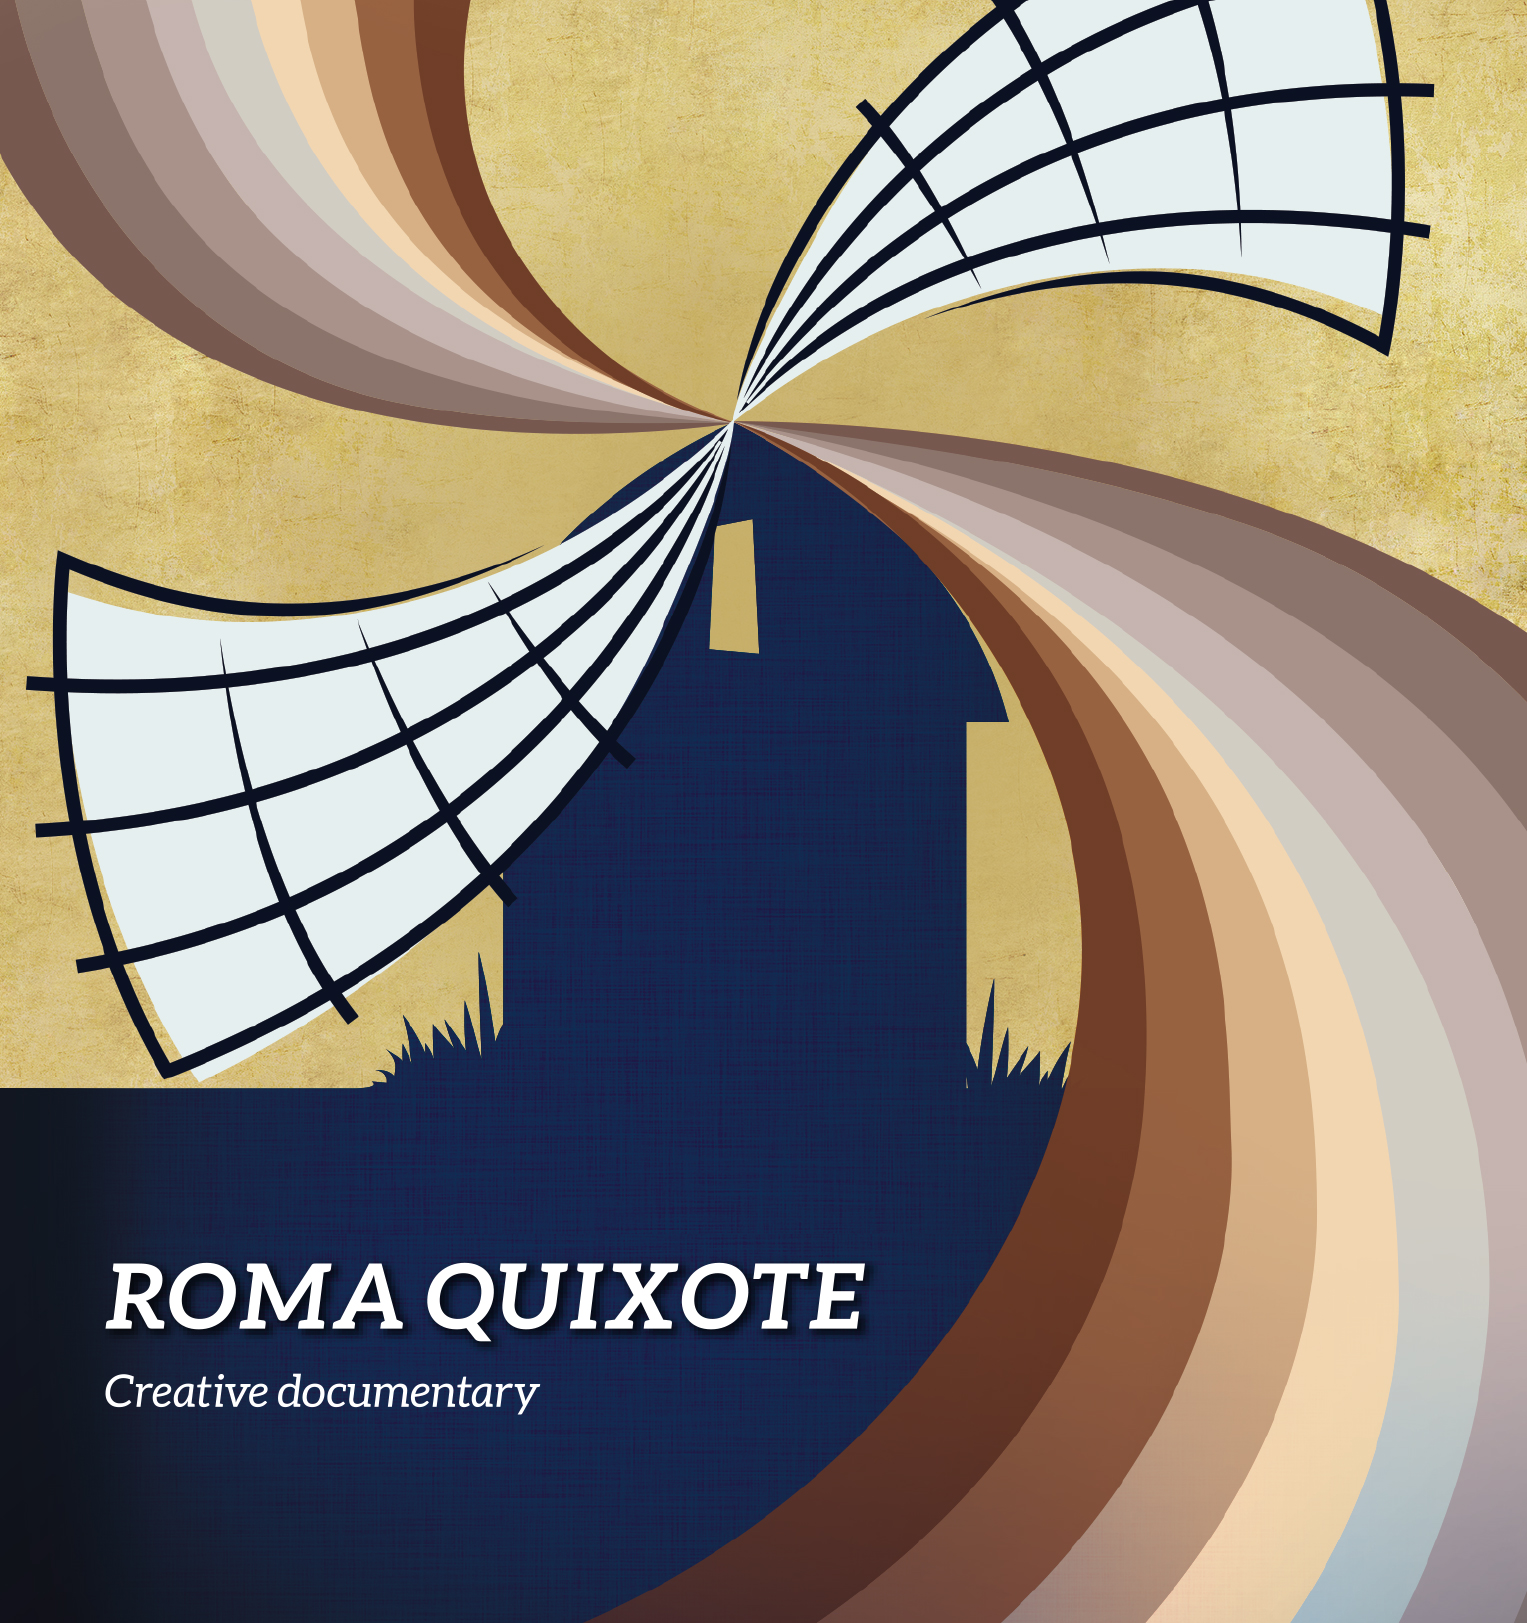 Roma-Quixote-featured-image